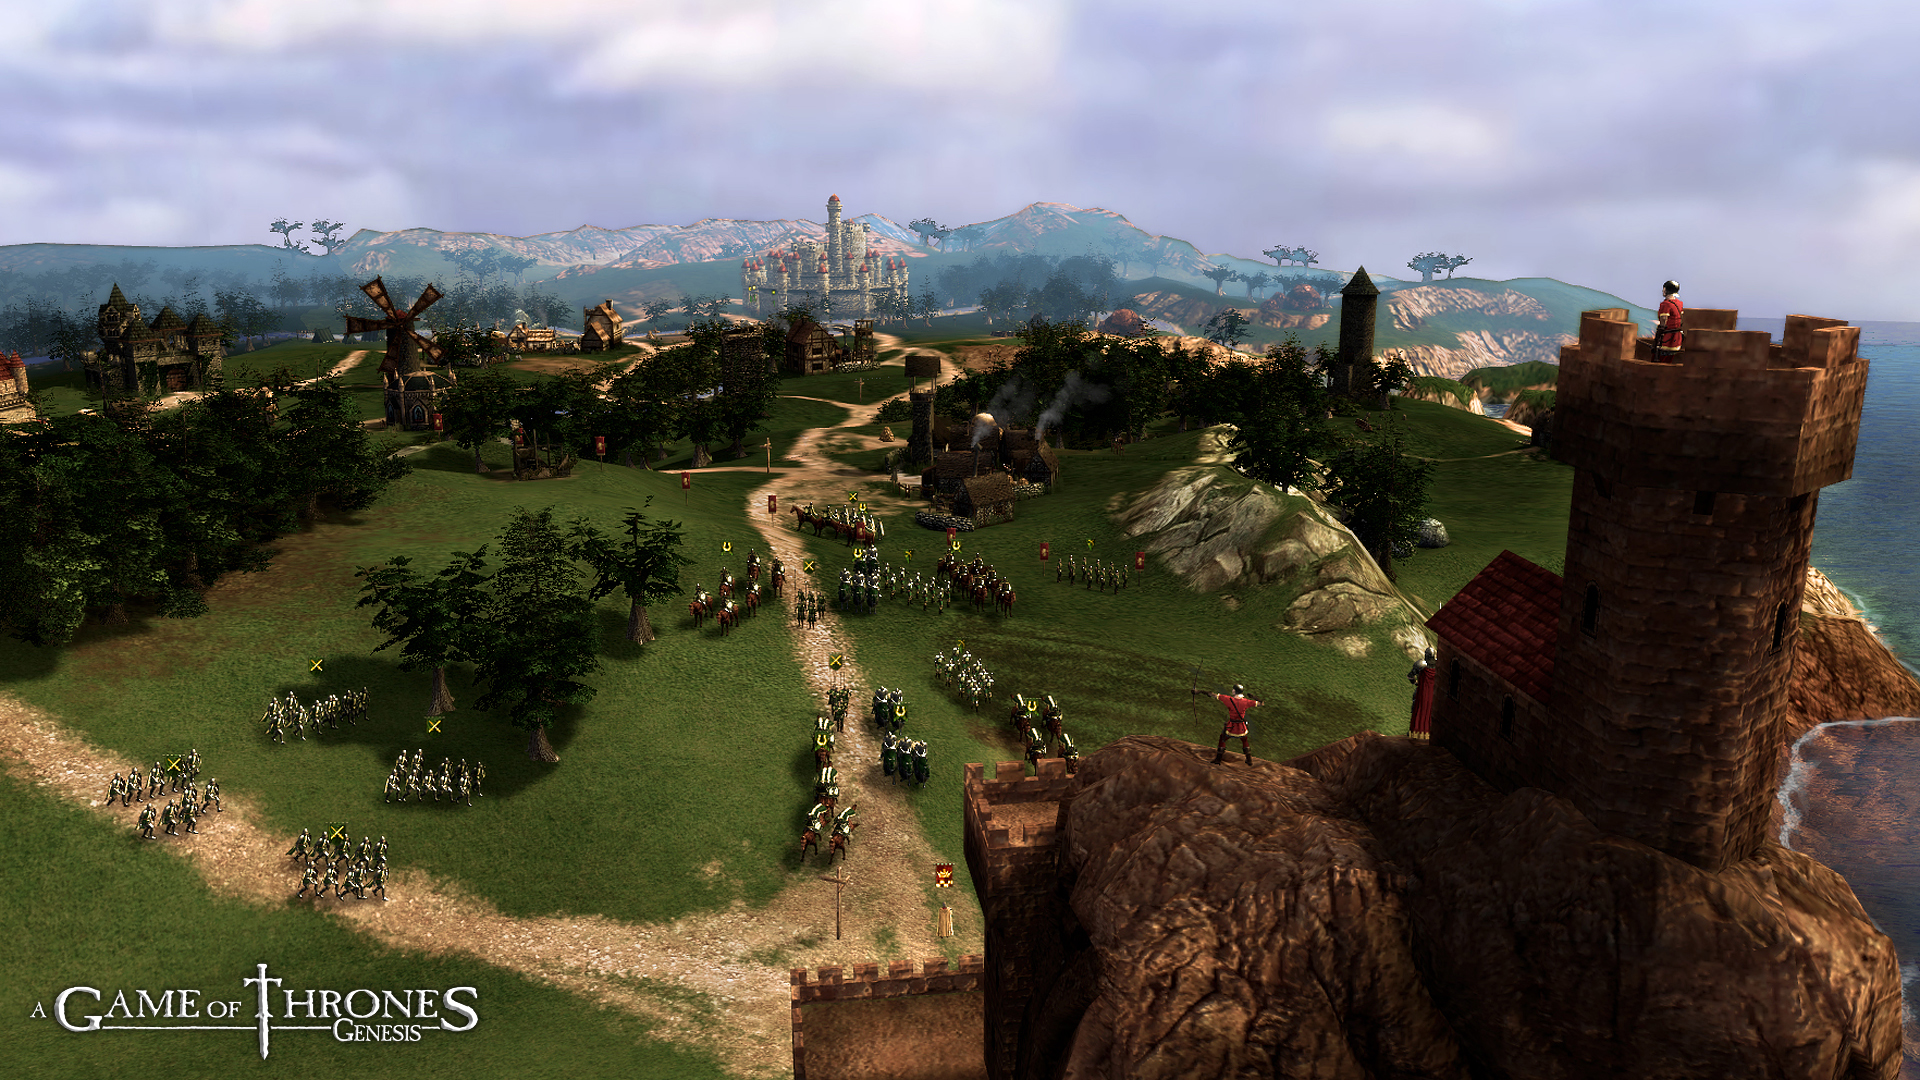 A Game of Thrones - Genesis screenshot